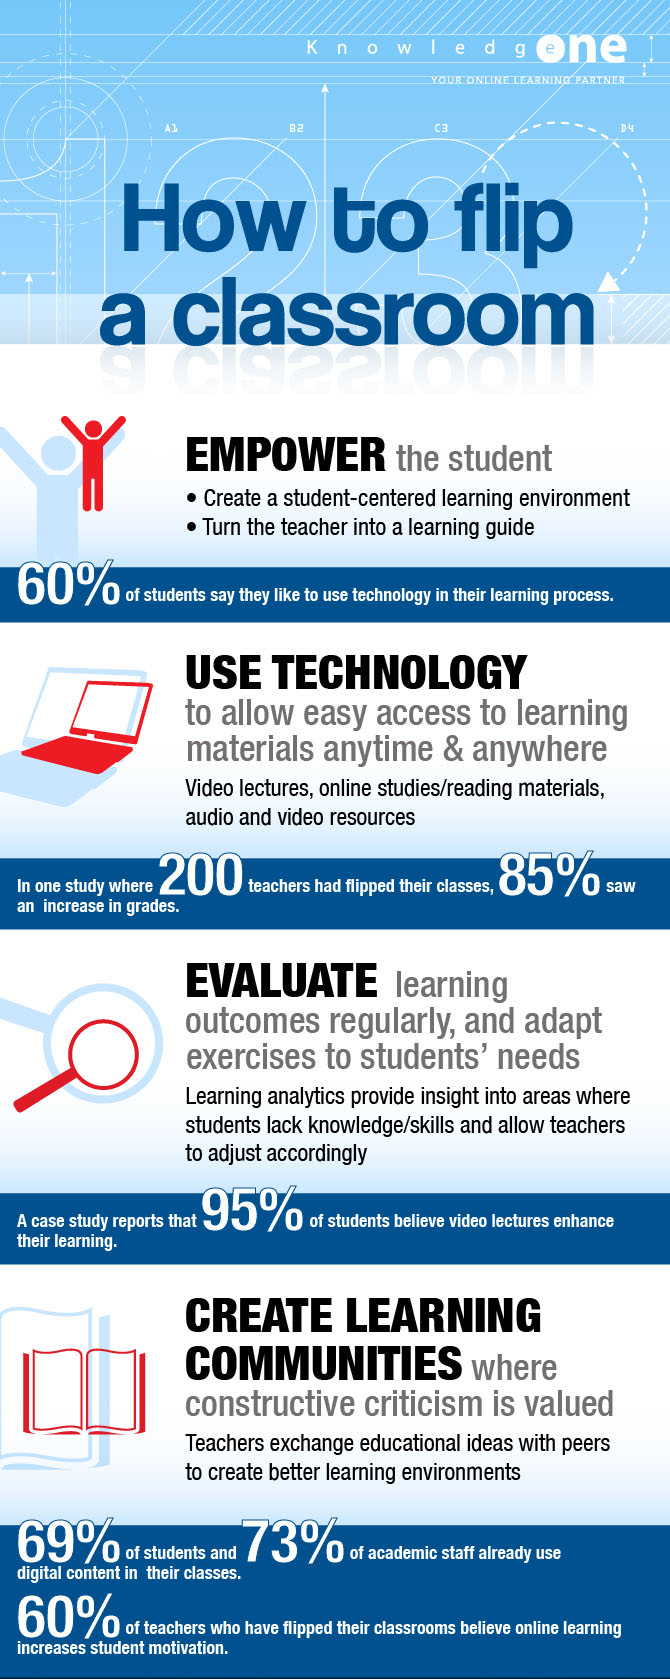 Flipped Classroom Infographic by KnowledgeOne